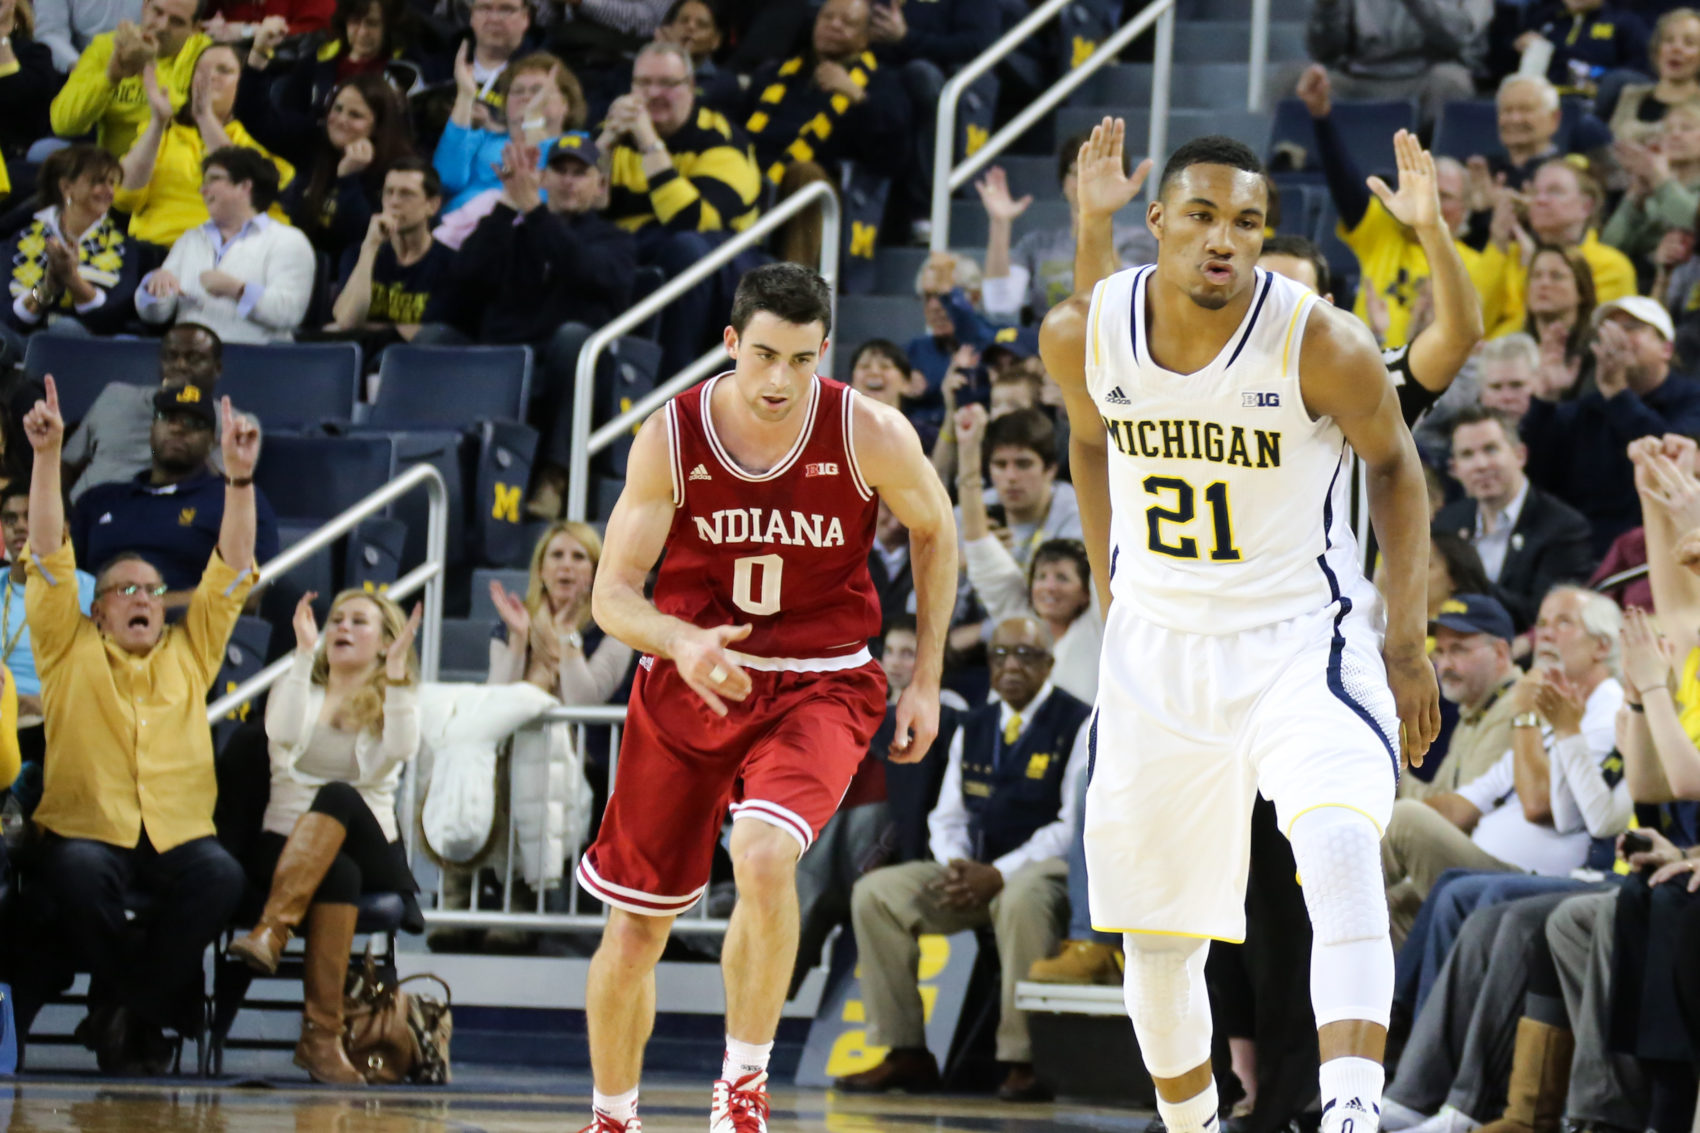 Michigan 84, Indiana 80-7